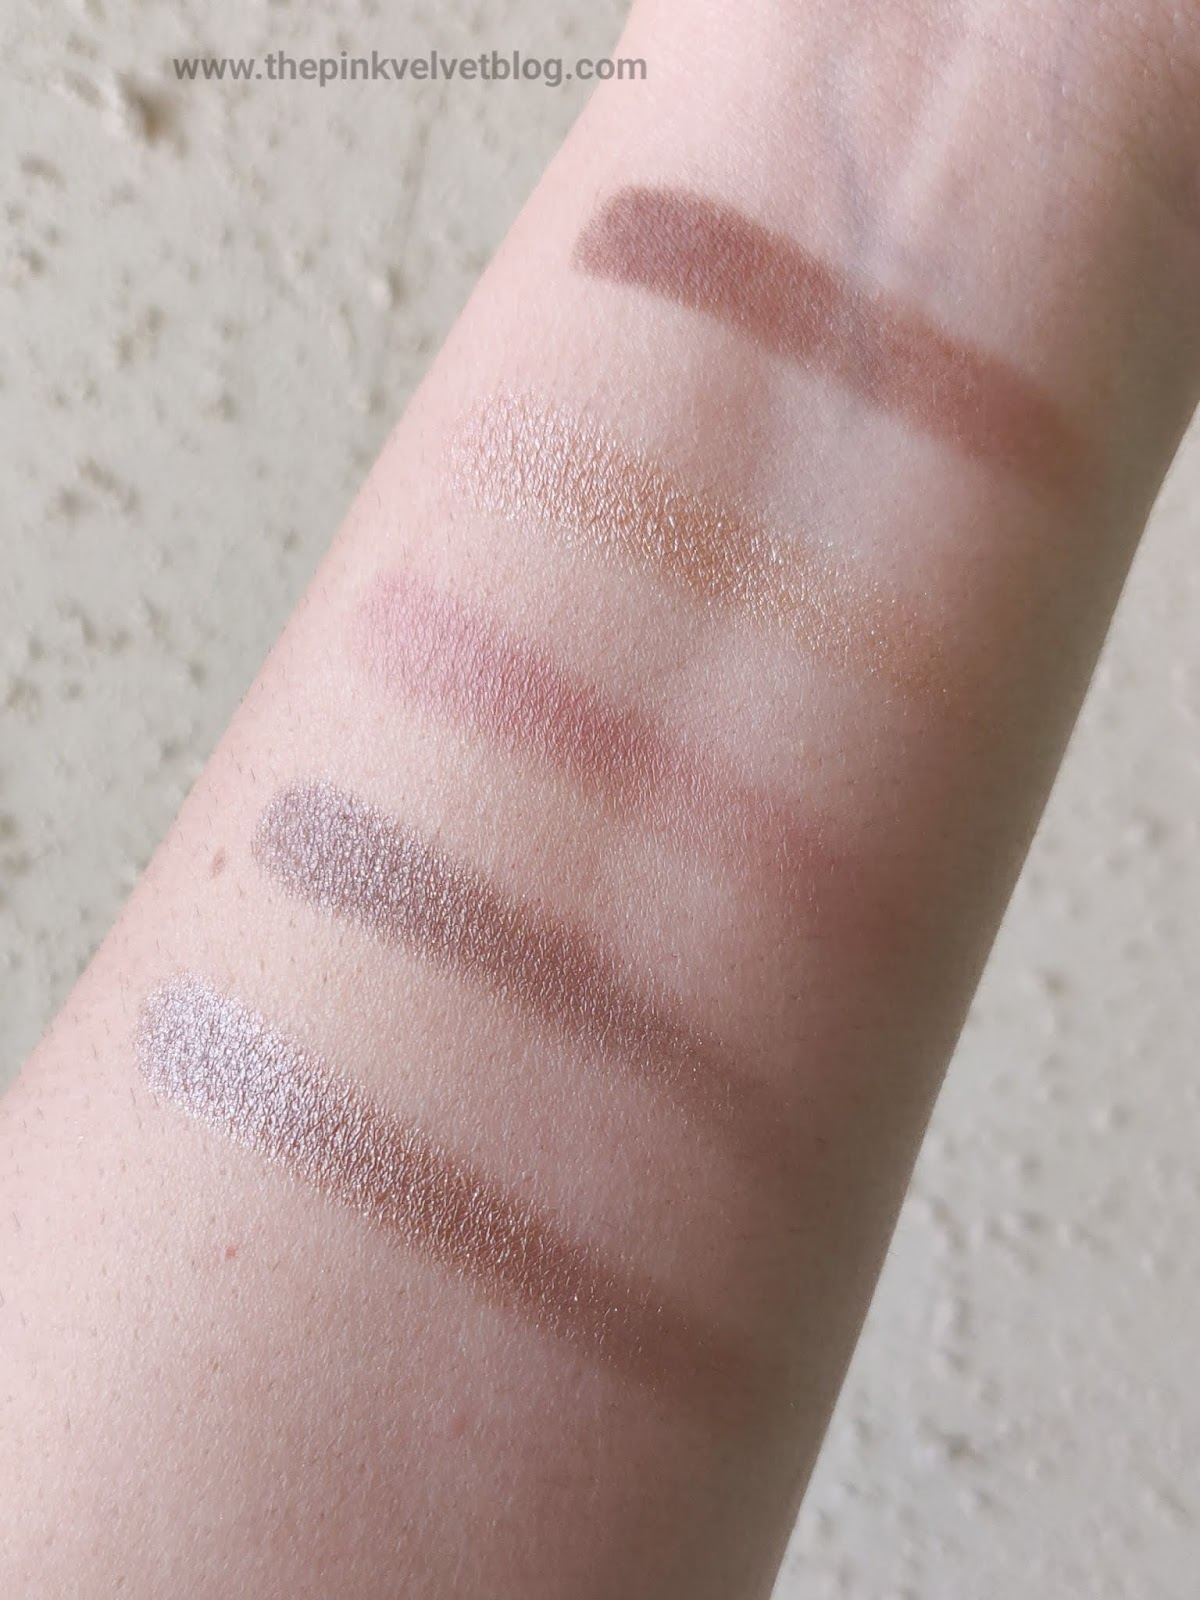 Top 5 Eyeshadow Palettes in India under Rs.1000/- and their Swatches - Maybelline City Mini Chill Brunch Neutrals